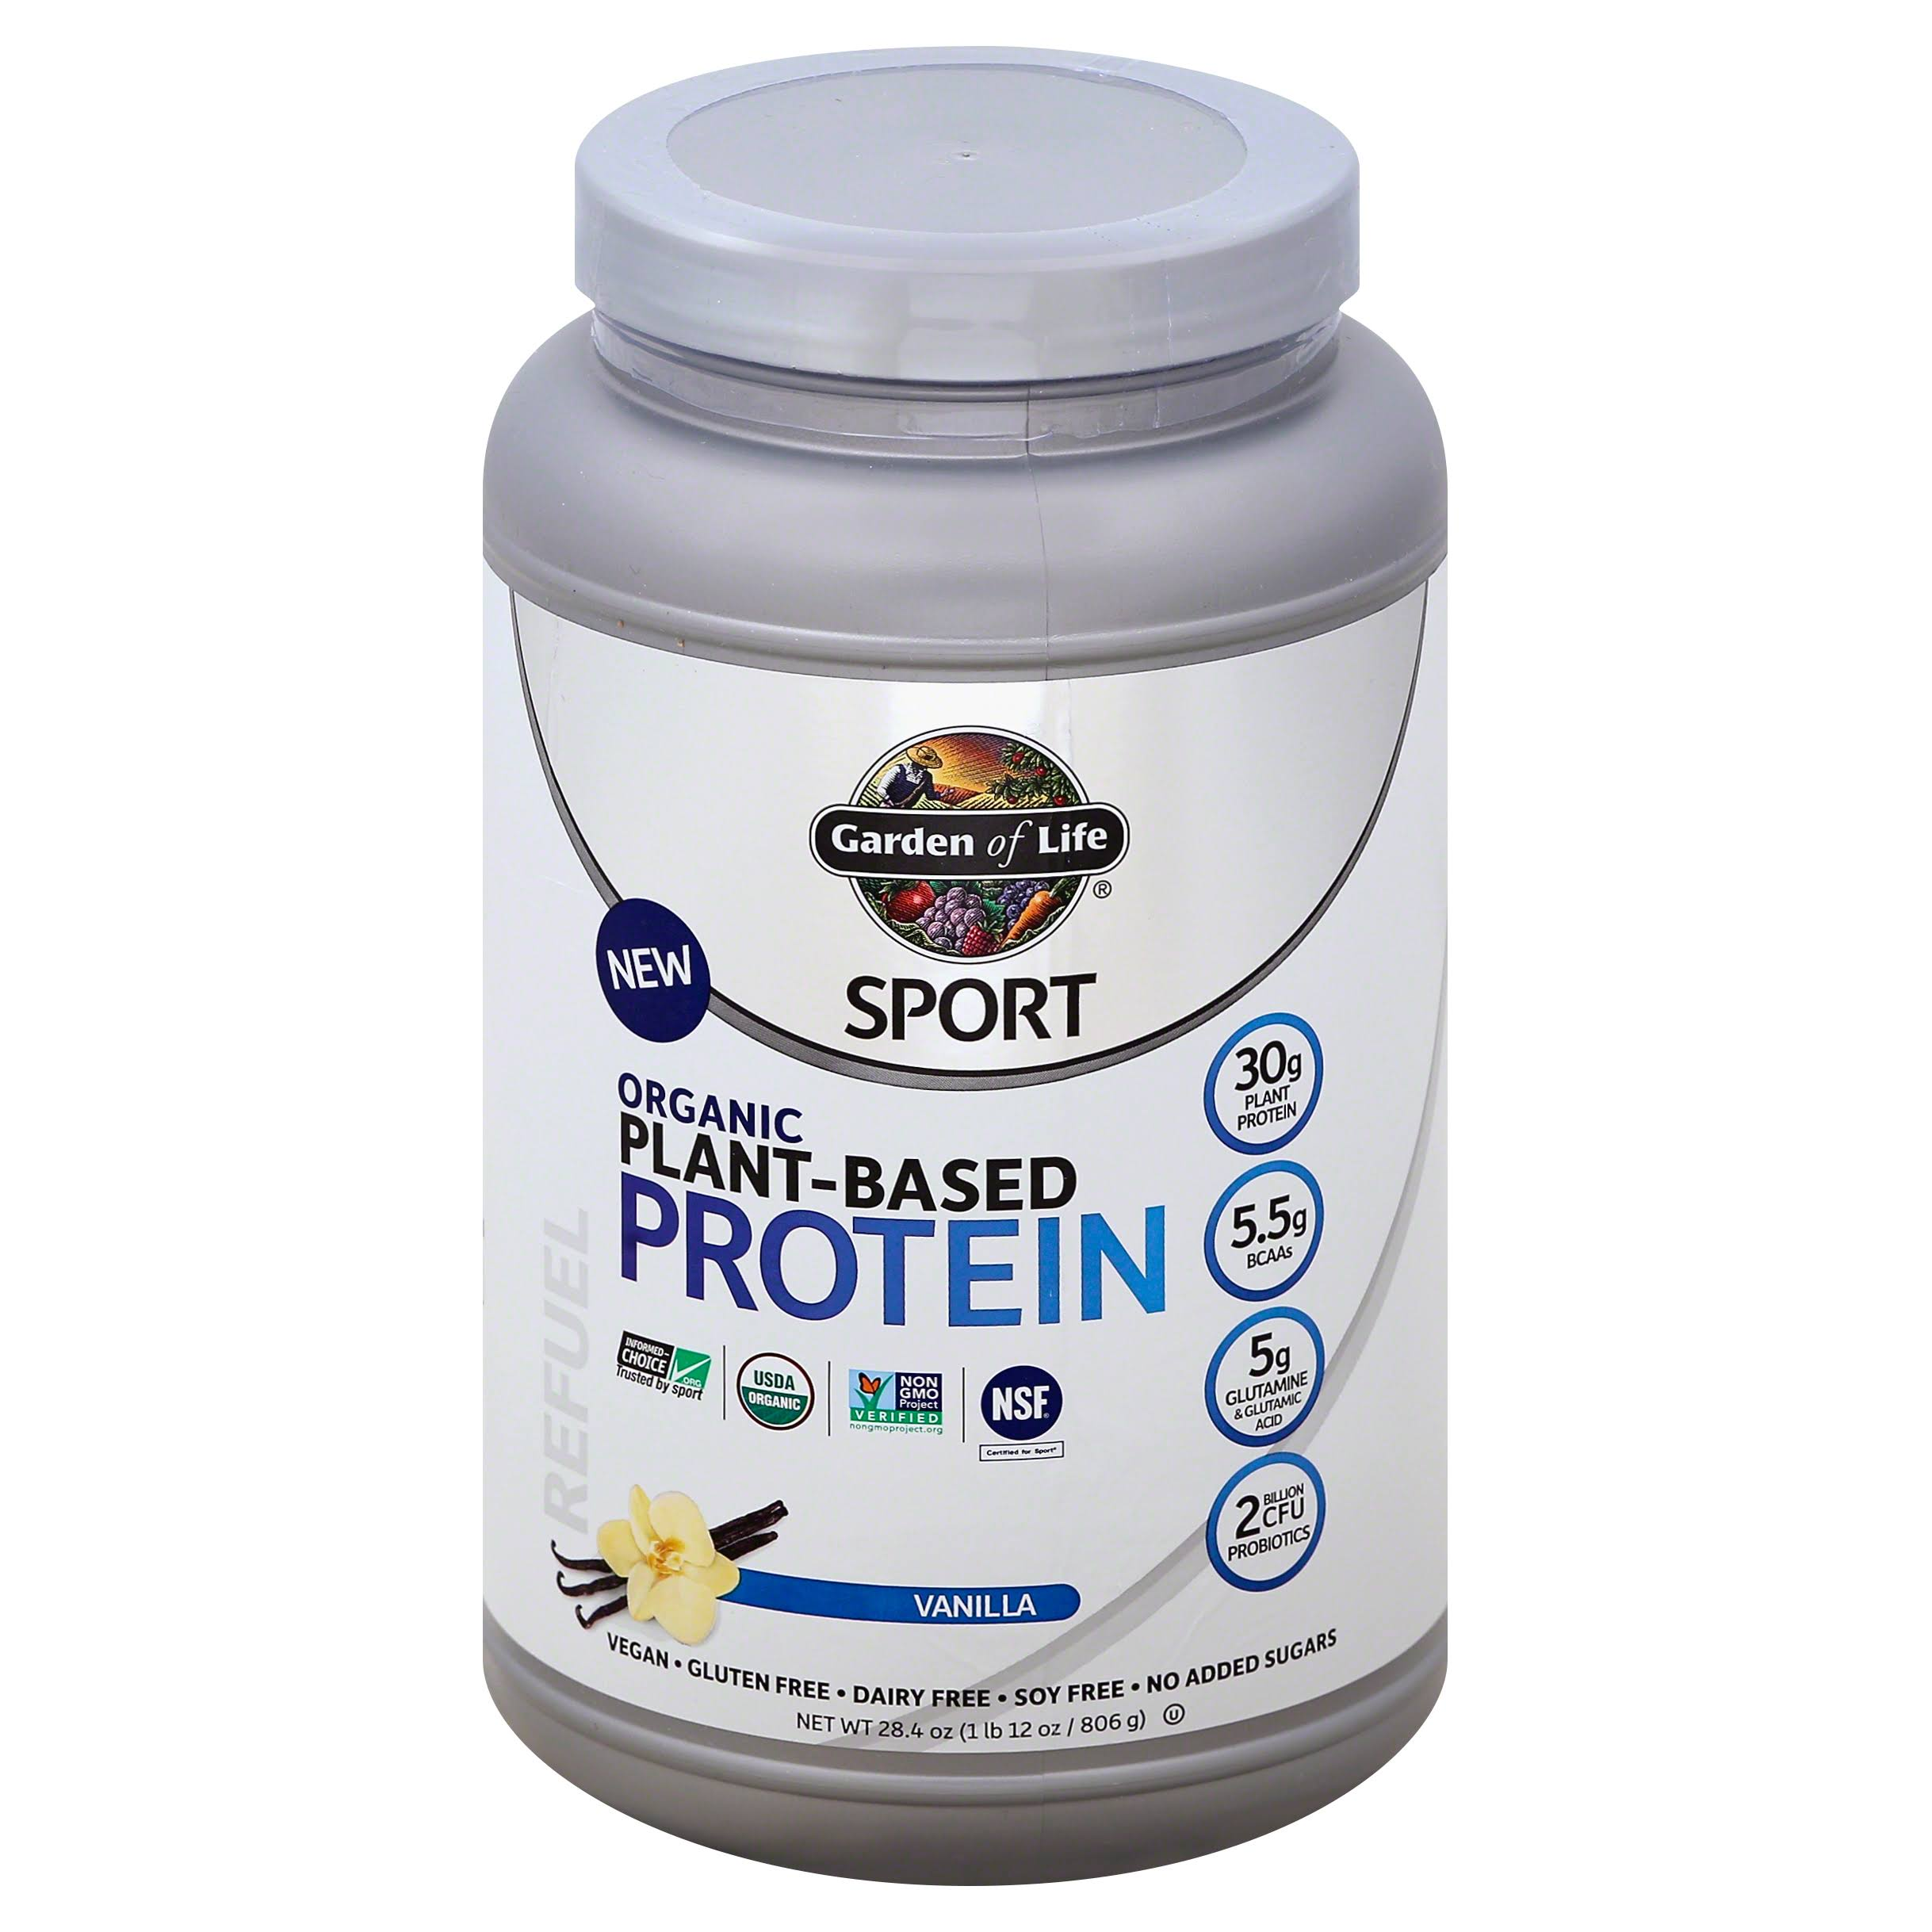 Garden Of Life Sport Organic Protein Supplement - Vanilla, 806g